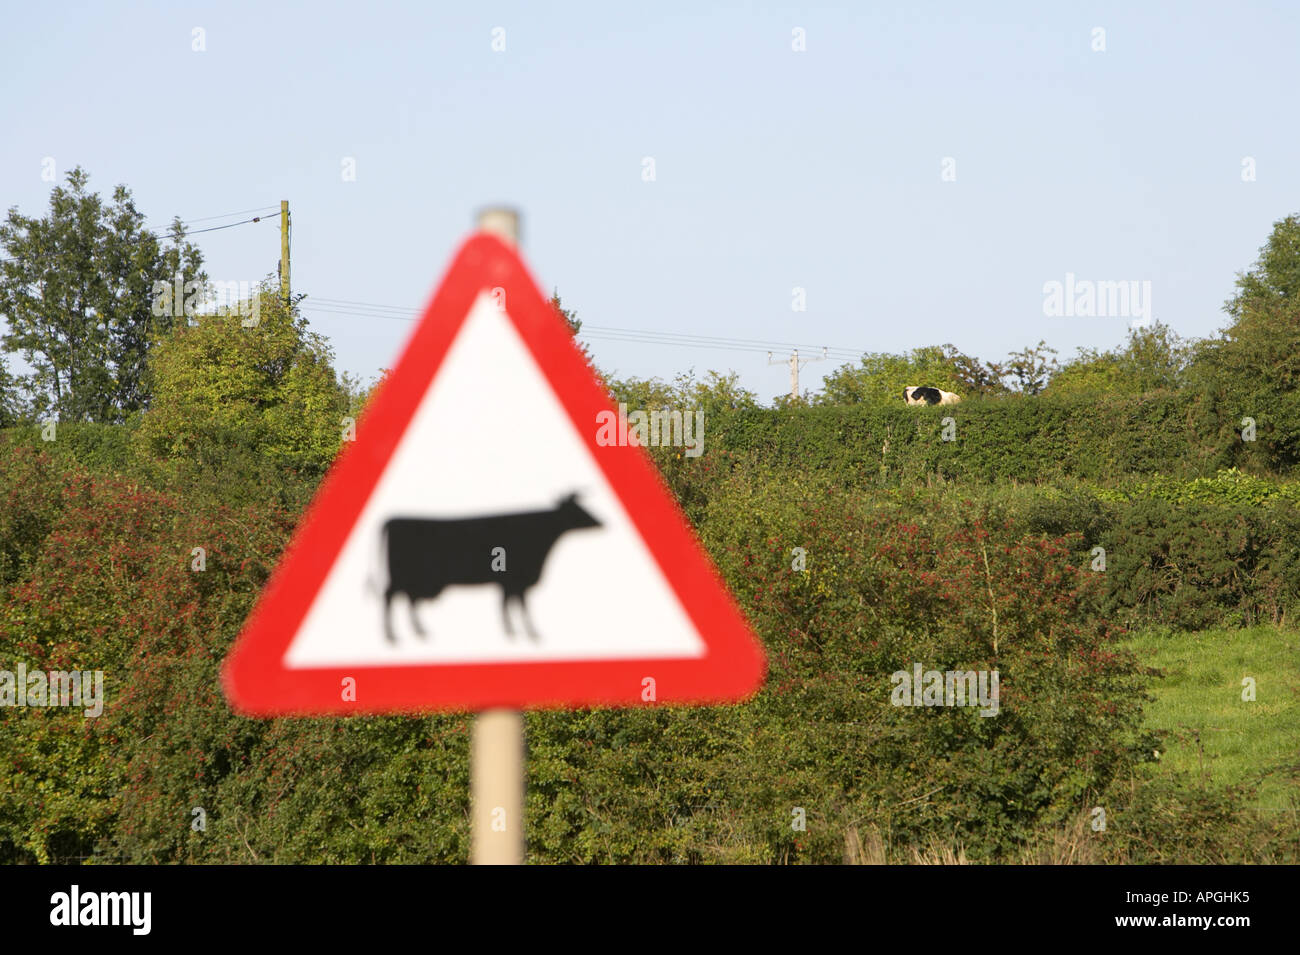 triangular red white and black cattle crossing ahead warning road sign with cow in field in the distance - Stock Image